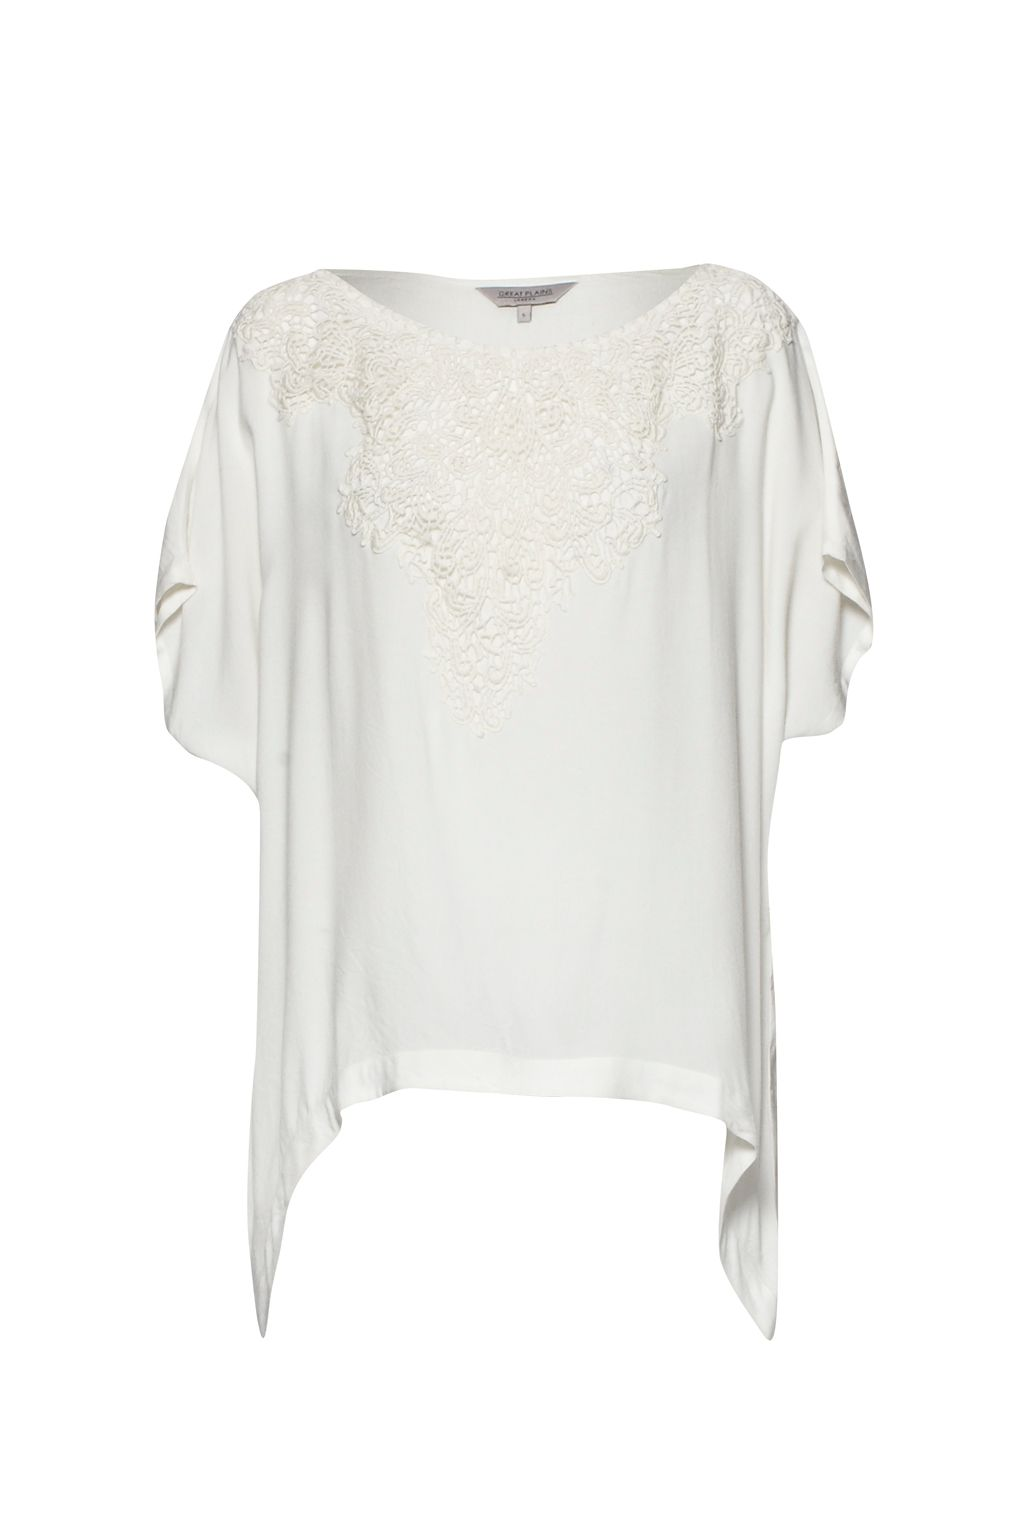 Great Plains Great Plains Dreamcatcher Lace Tunic Top, White